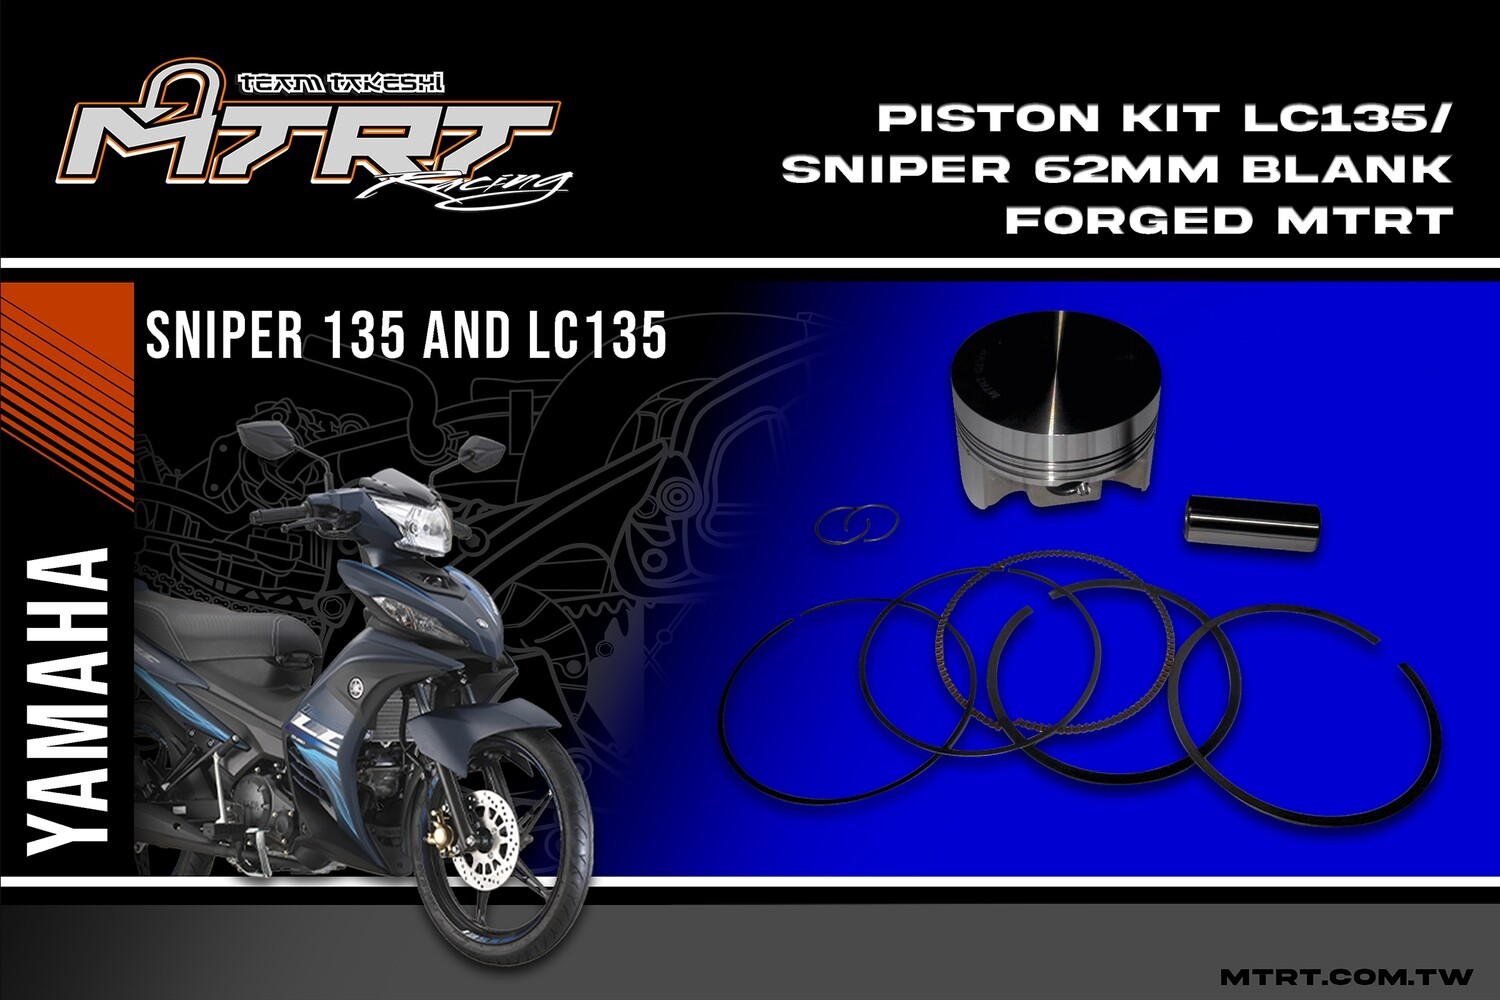 PISTON KIT  LC135SNIPER 62MM Blank FORGED MTRT